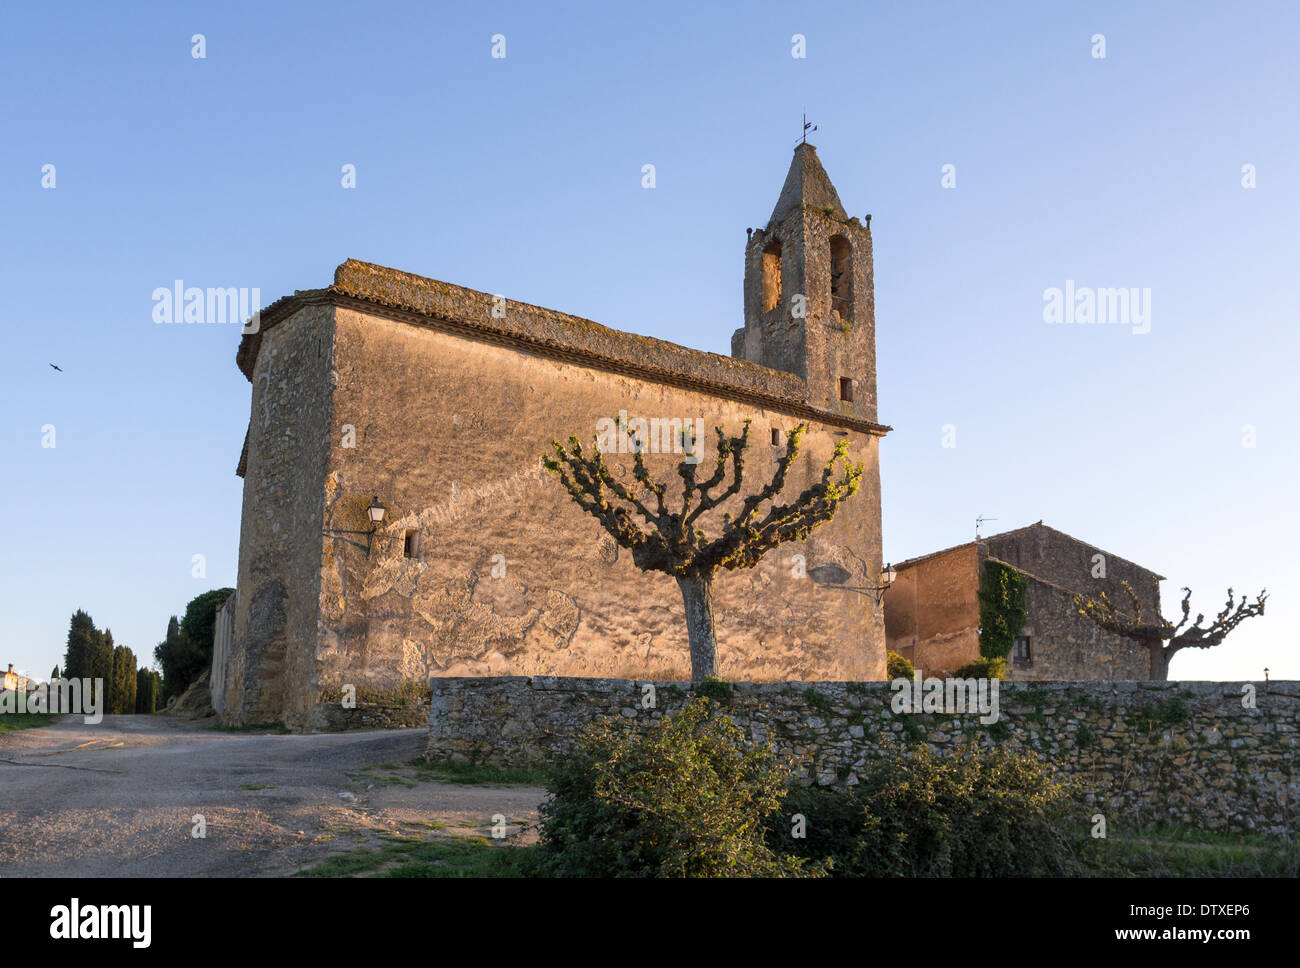 Ancient Church, New Growth. A heavily pruned tree sprouts new spring leaves at the side of an ancient rural church in Catalonia. - Stock Image